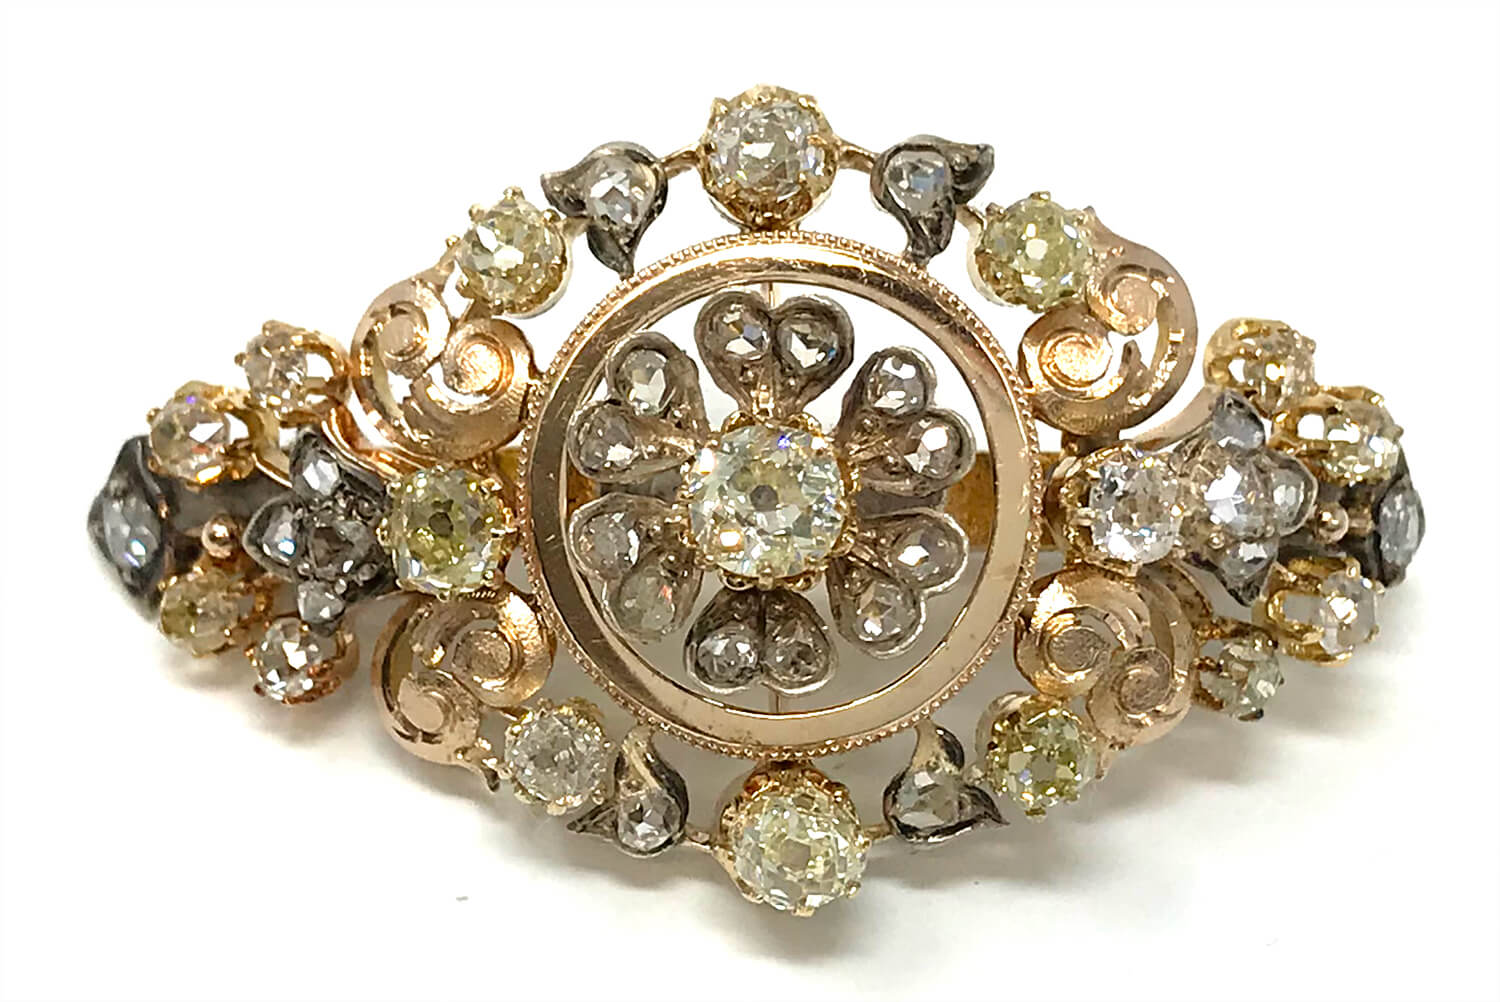 Antique Victoria era 18k gold and genuine diamond brooch